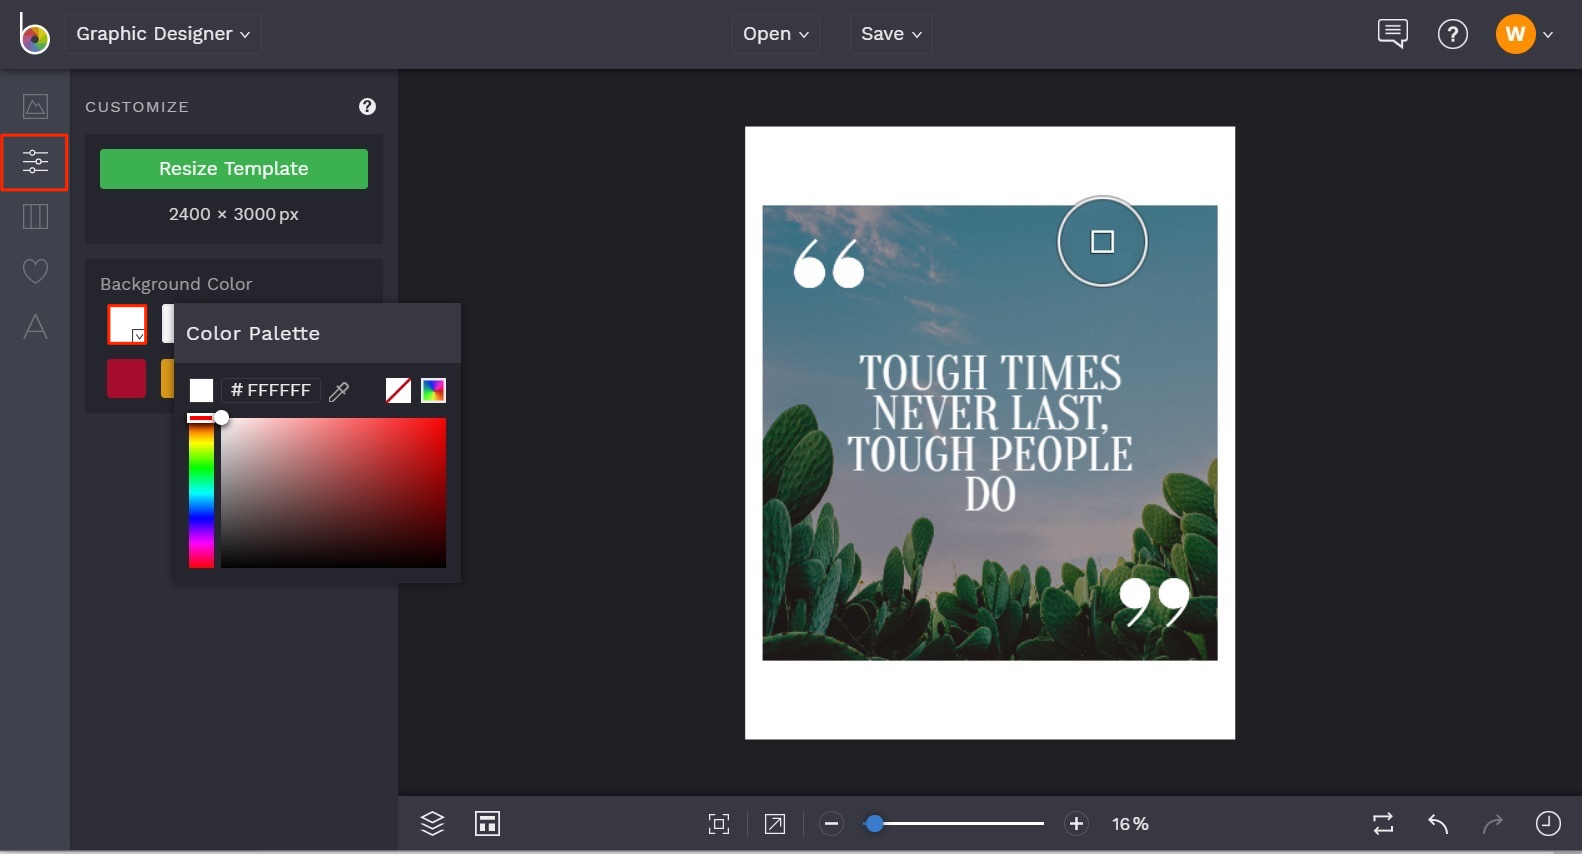 how to change background color of design template in BeFunky